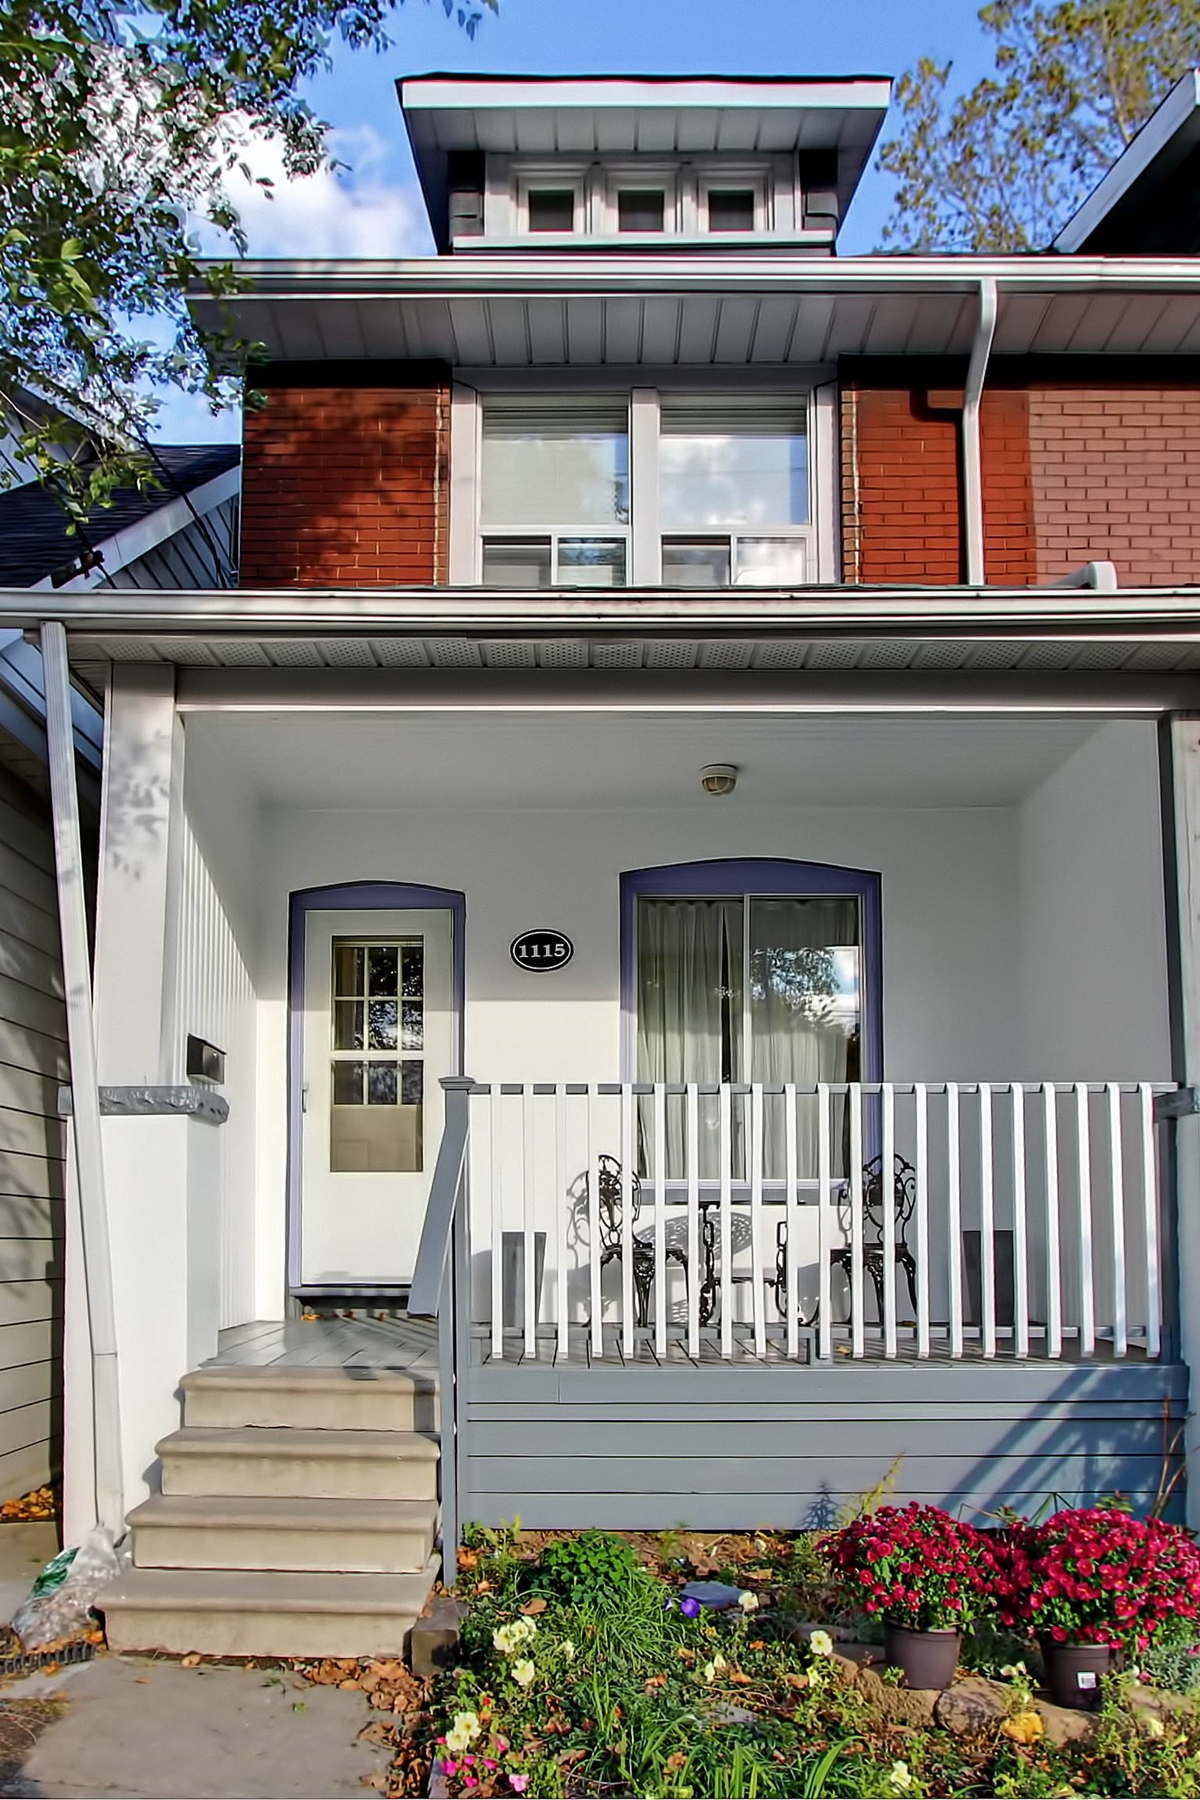 SOLD: 1115 Woodbine Ave.